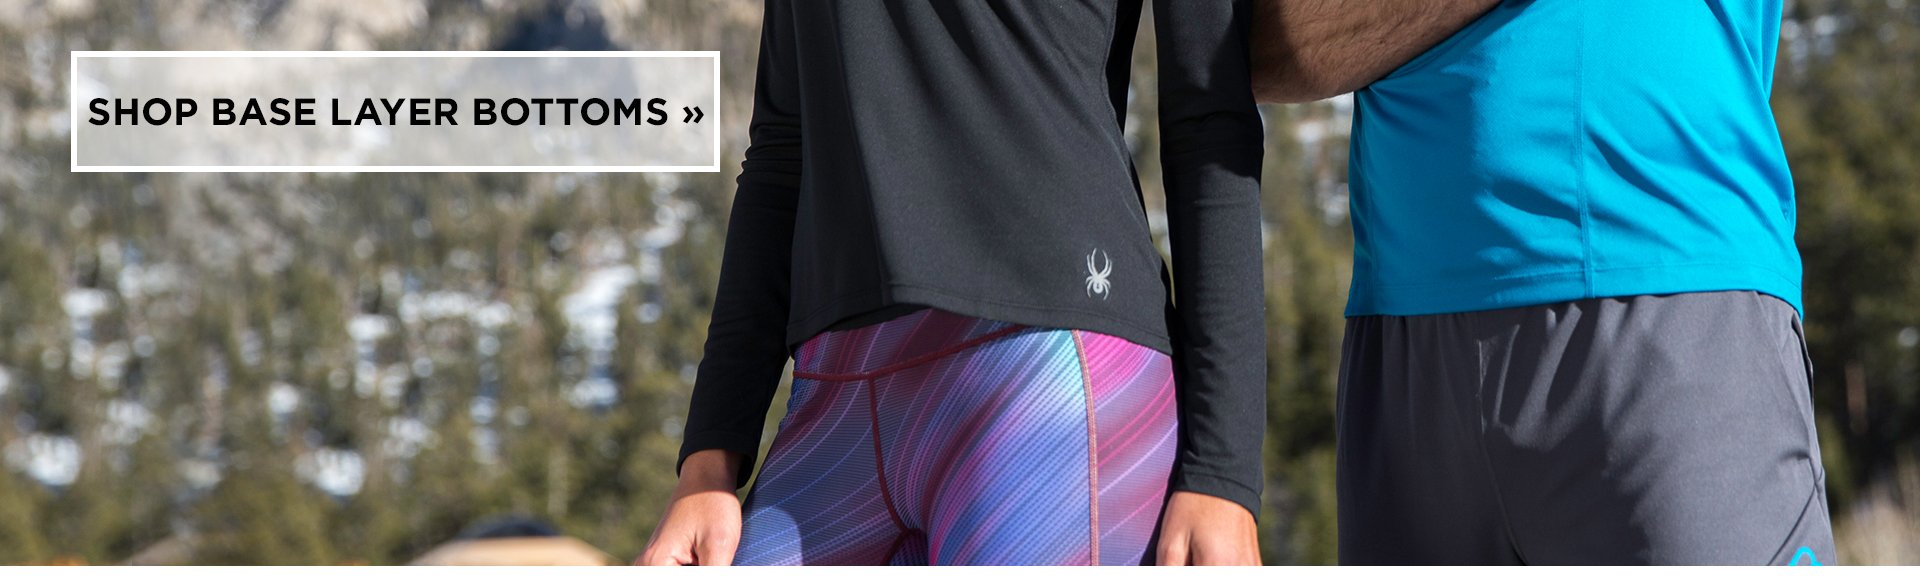 Spyder Base Layer Bottoms